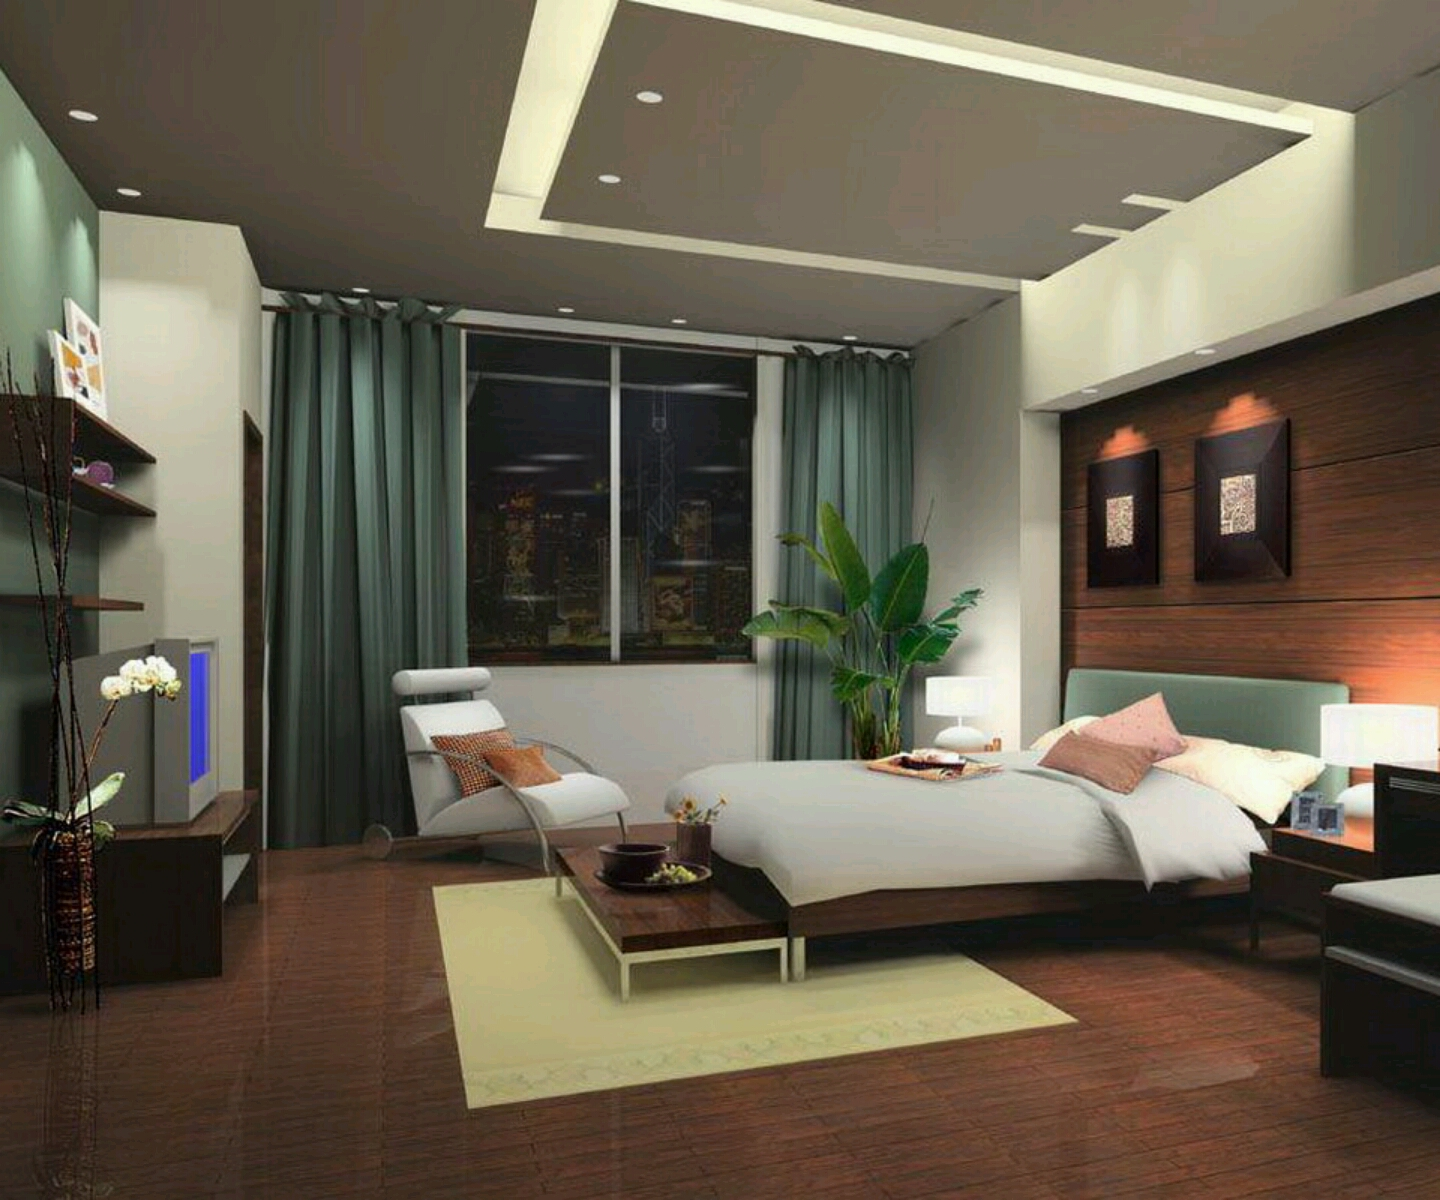 New home designs latest modern bedrooms designs best ideas for Bedroom designer